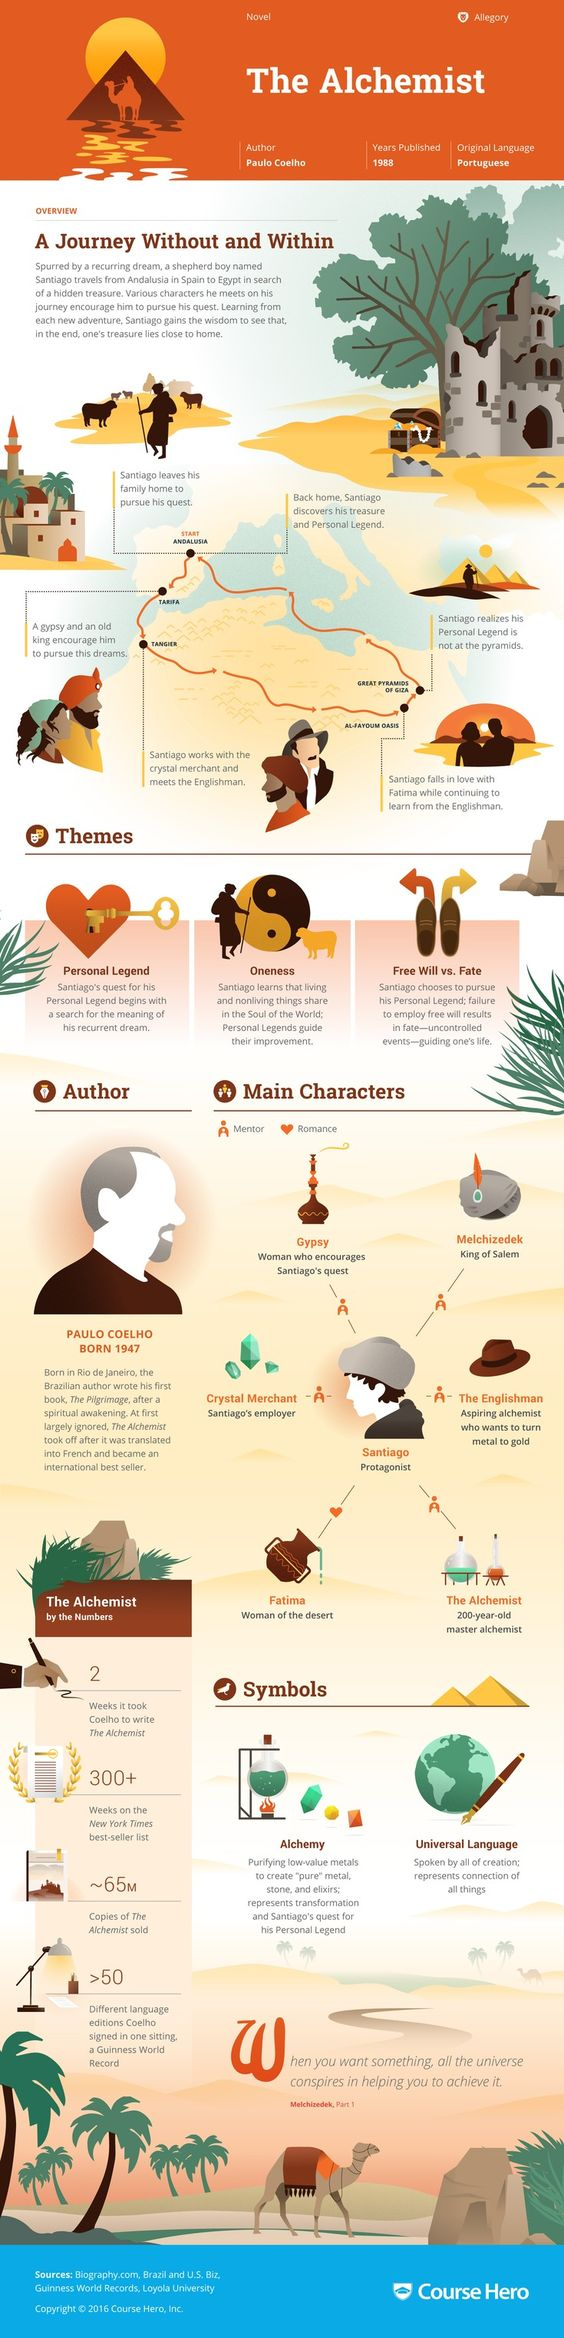 best images about book summary on pinterest classic literature